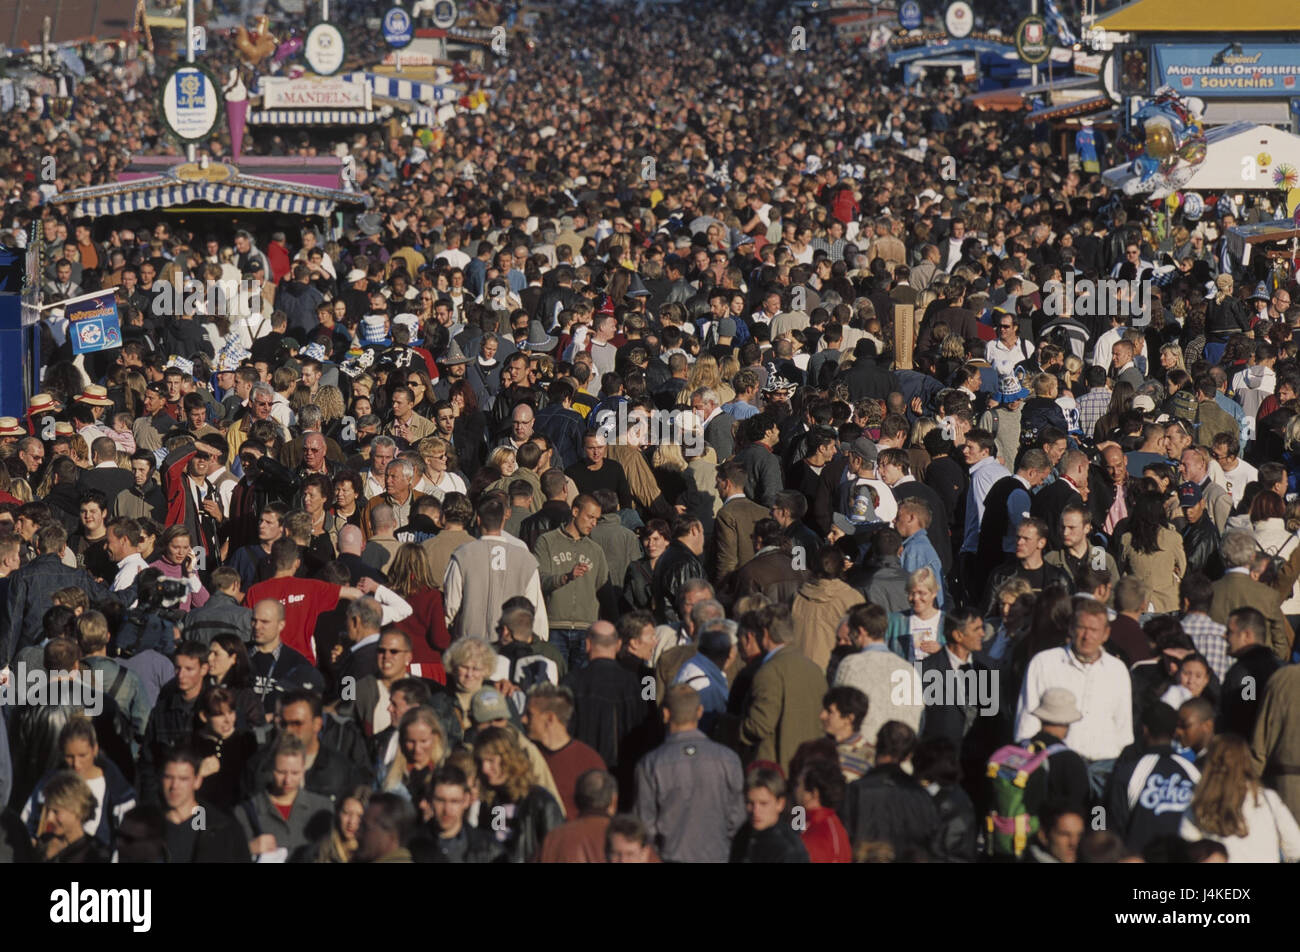 Germany, Bavaria, Munich, October feast, crowd of people Europe, Upper Bavaria, feast, fair, public festival, visitor, - Stock Image